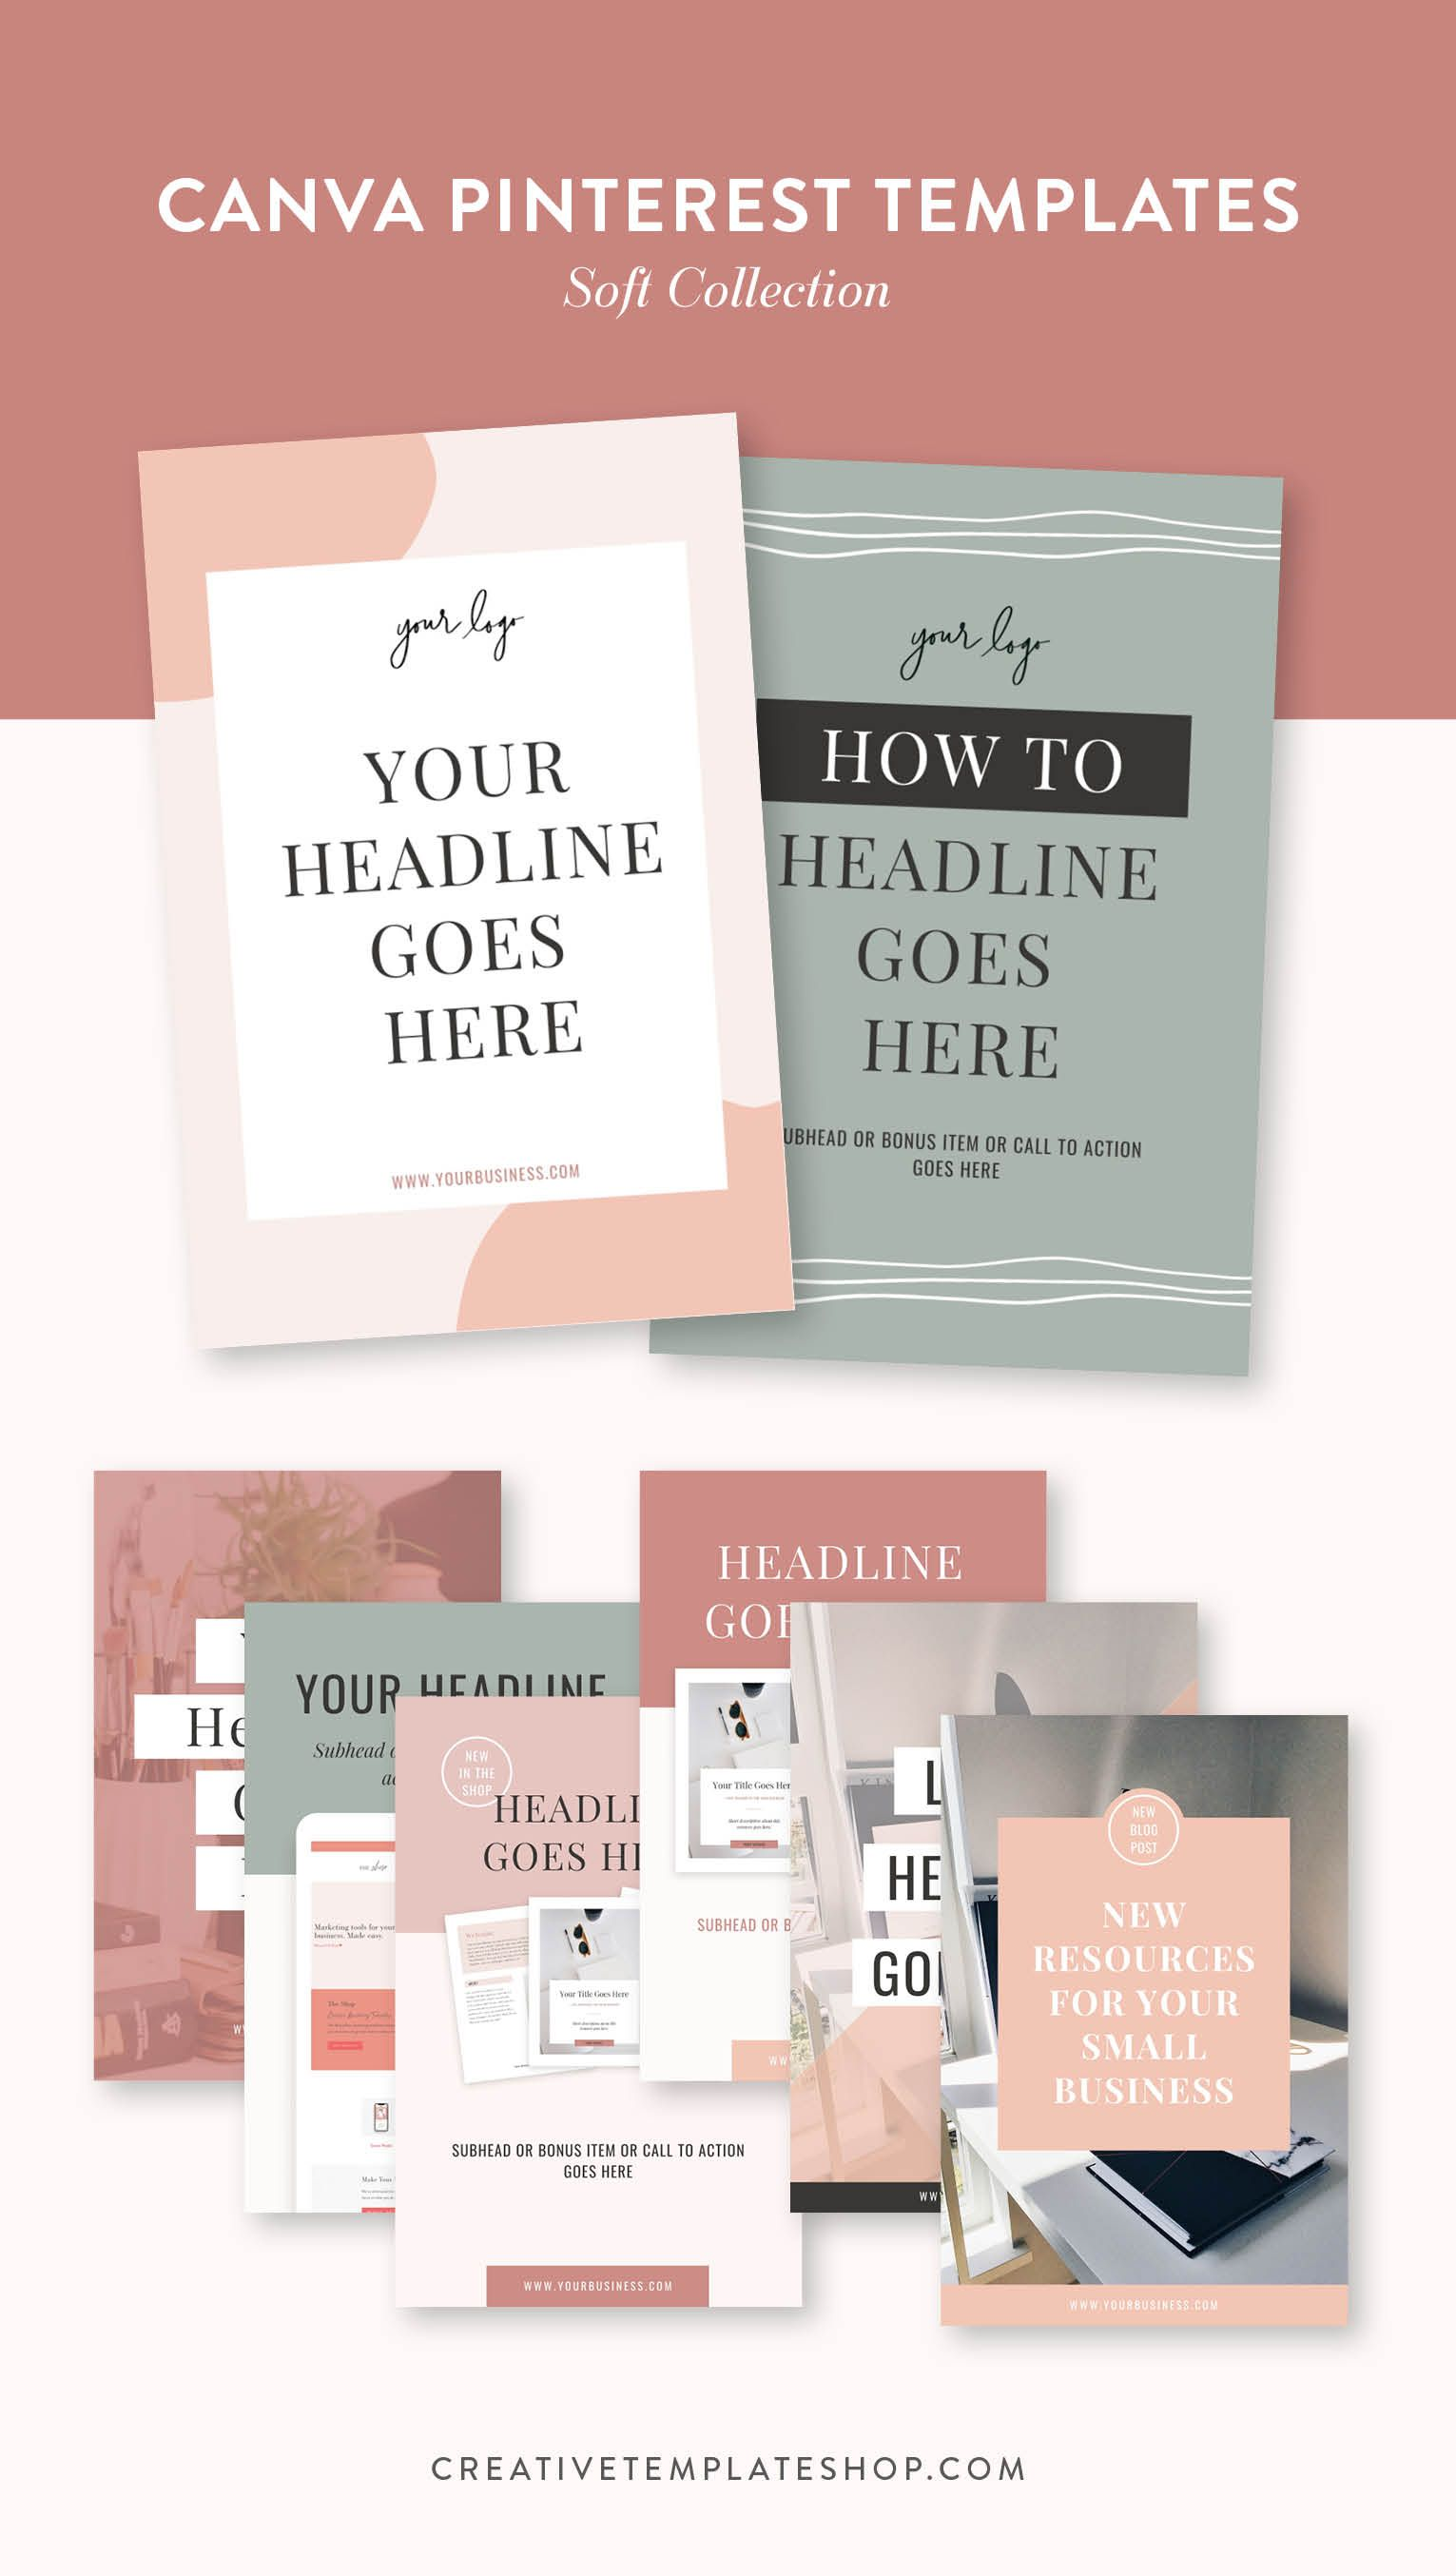 Canva Pinterest Templates Soft Collection The Shop in